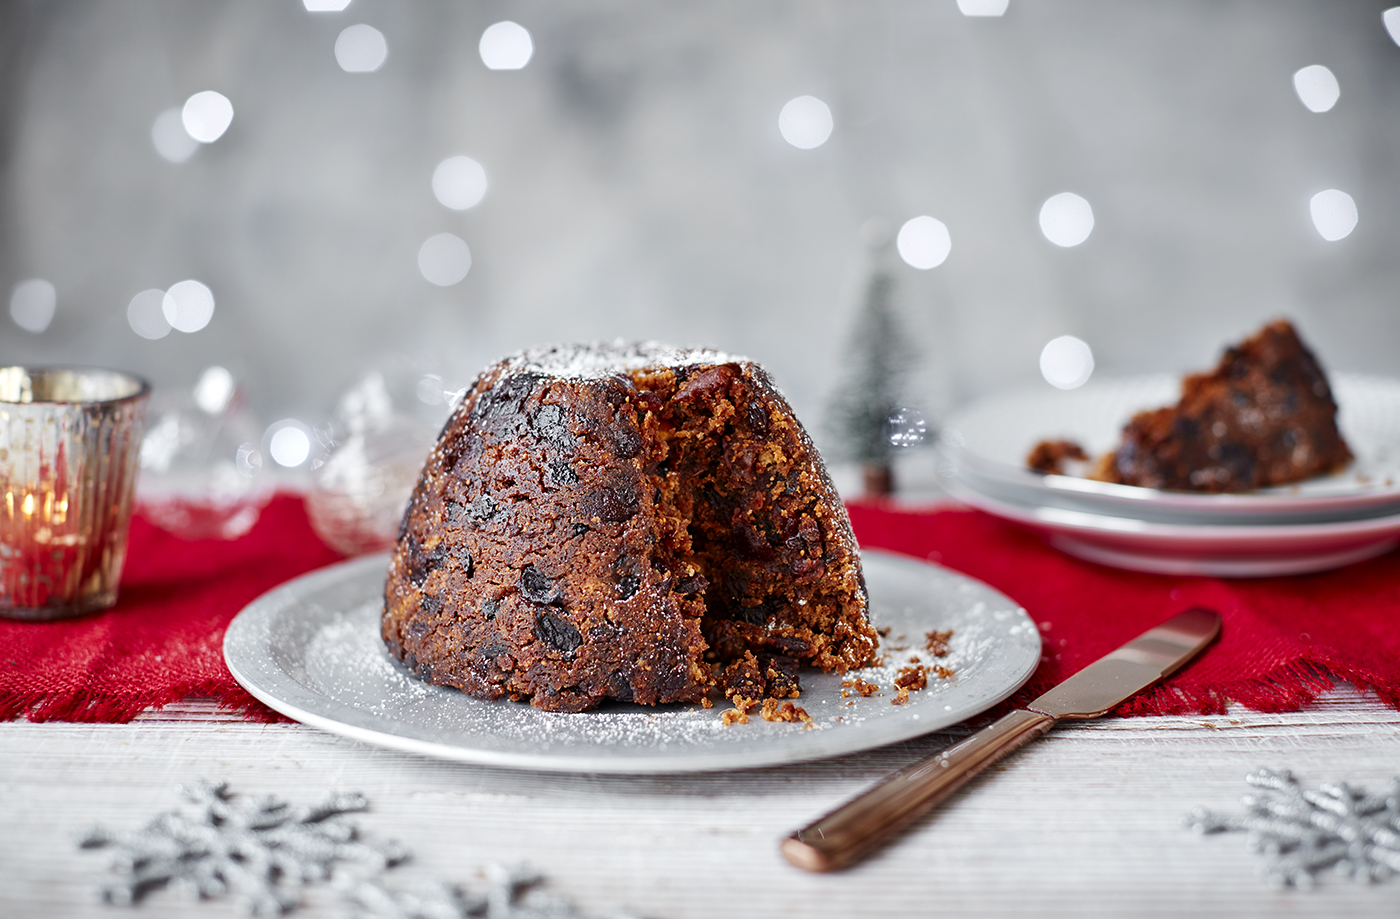 Christmas Pudding di Tesco